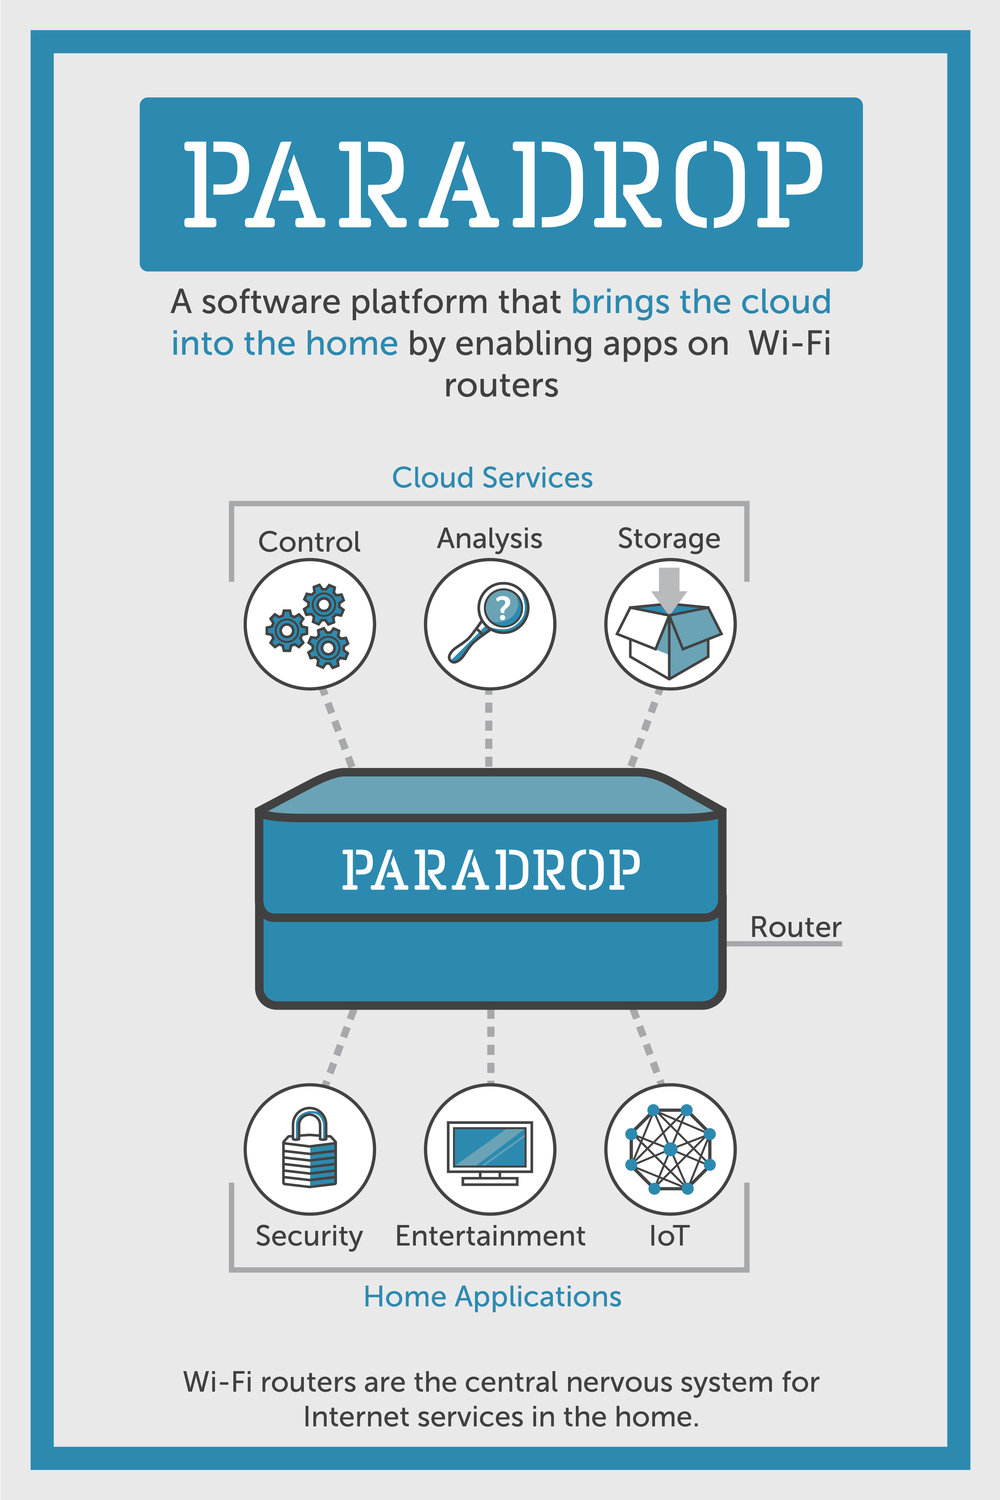 Paradrop Poster Image_Router.jpg